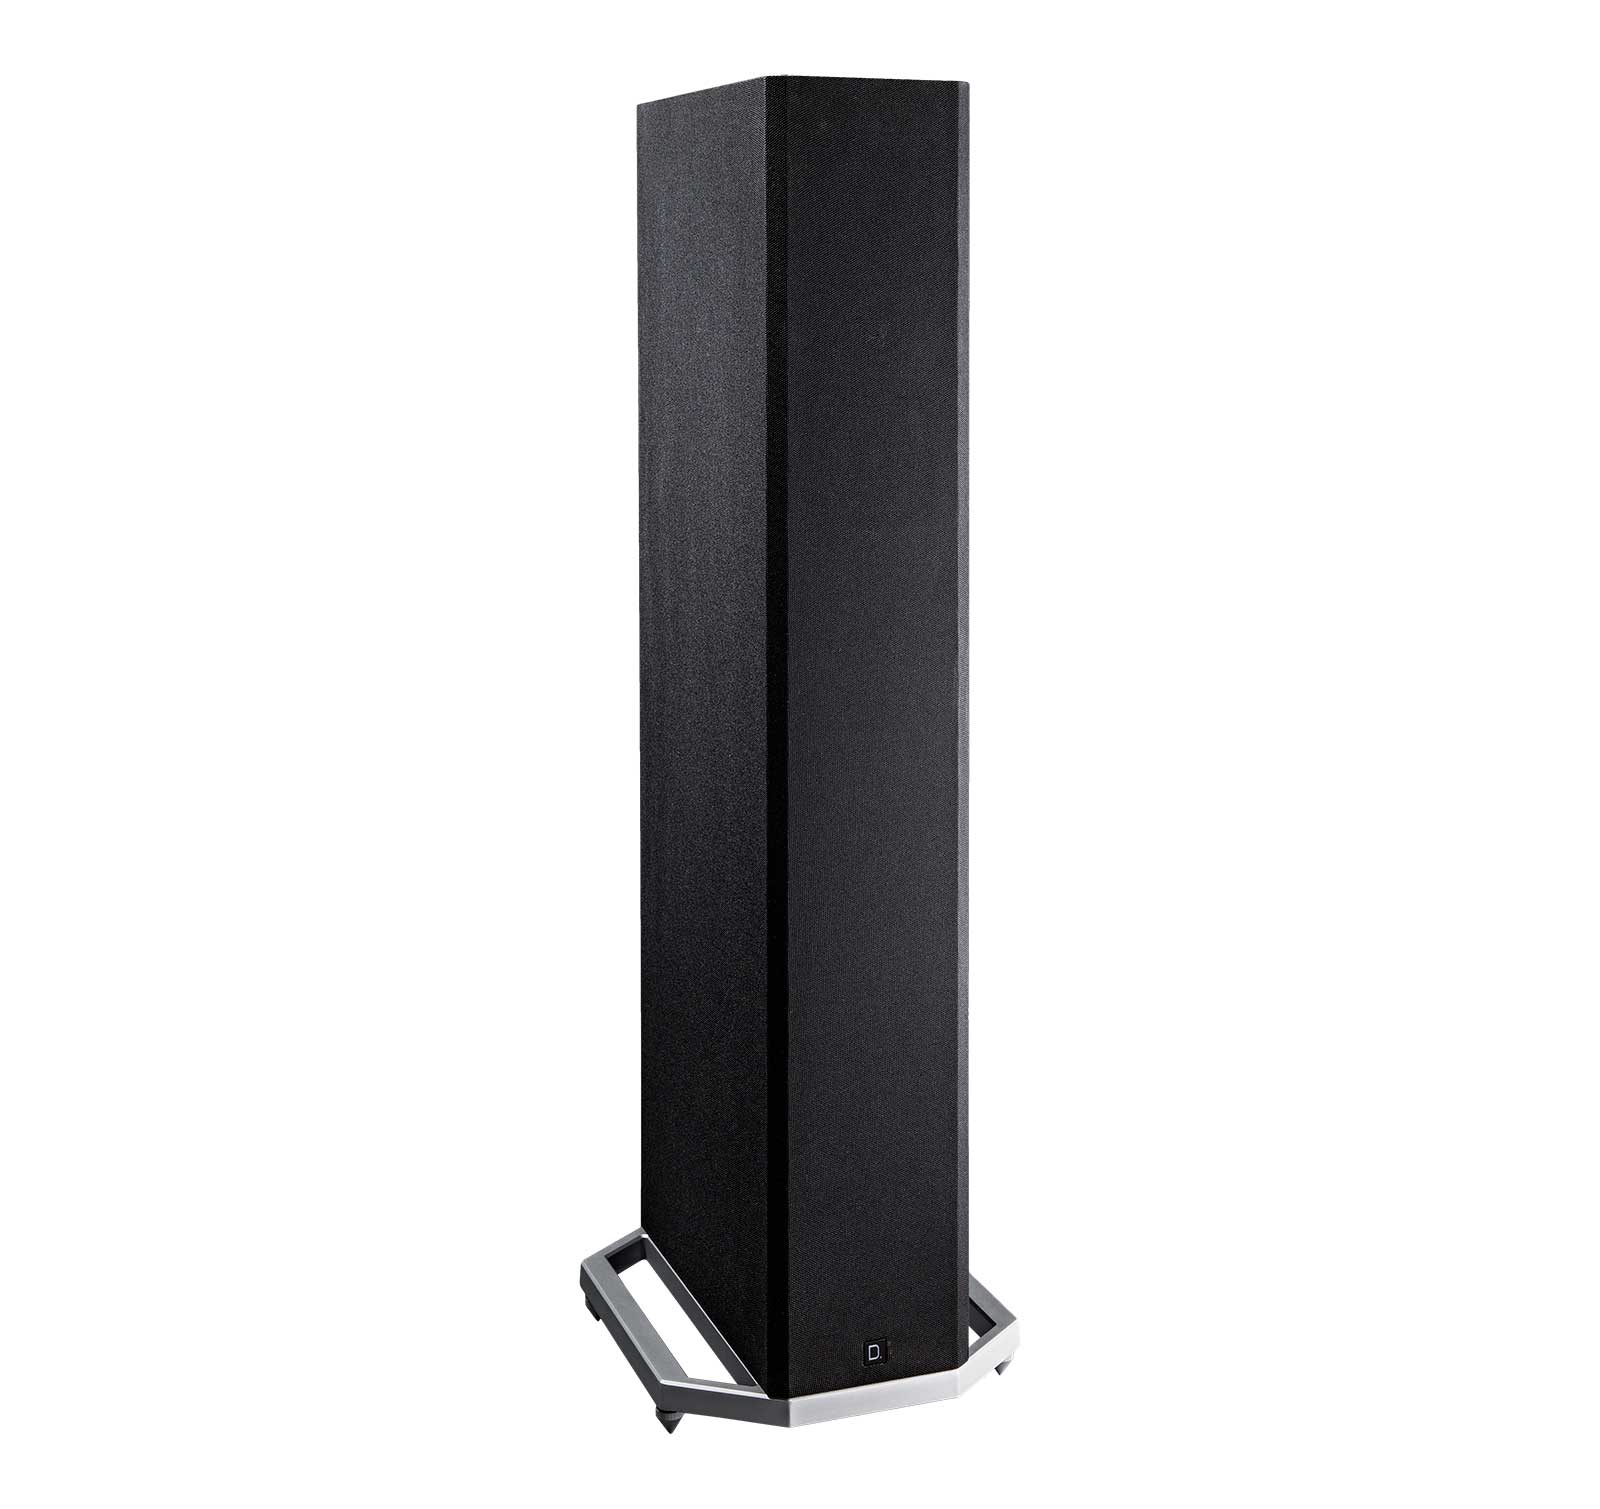 Image of the BP9020 Tower Speaker